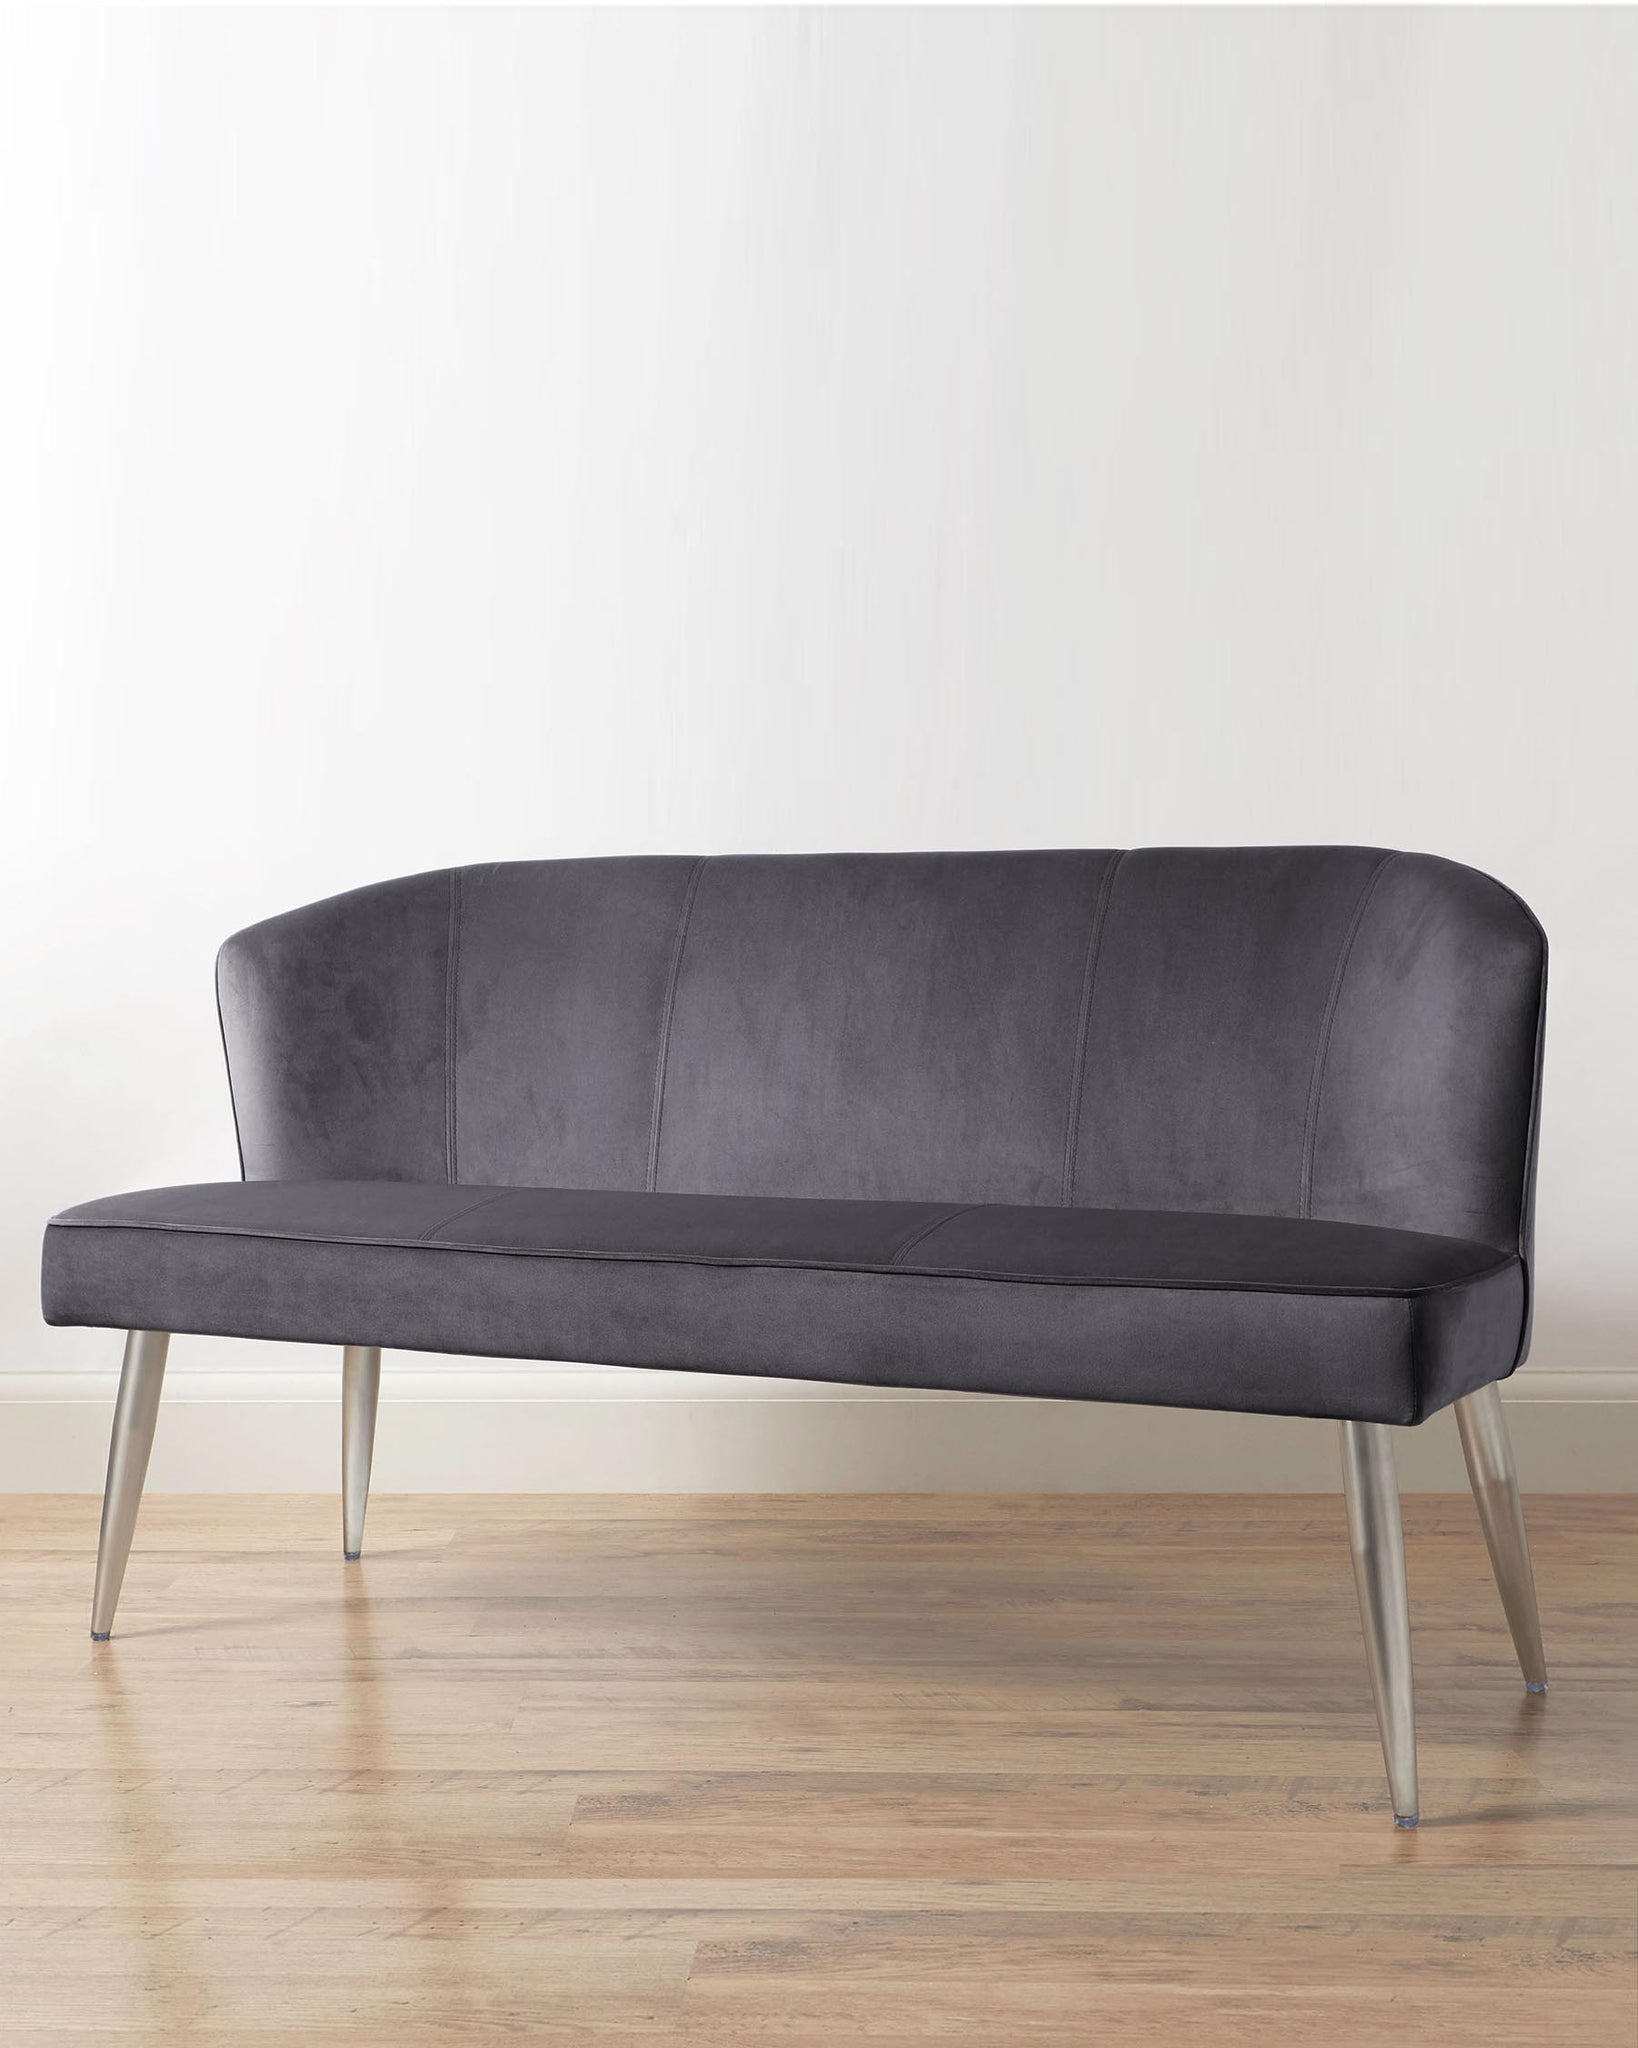 Mellow Dark Grey Velvet 3 Seater Bench With Backrest